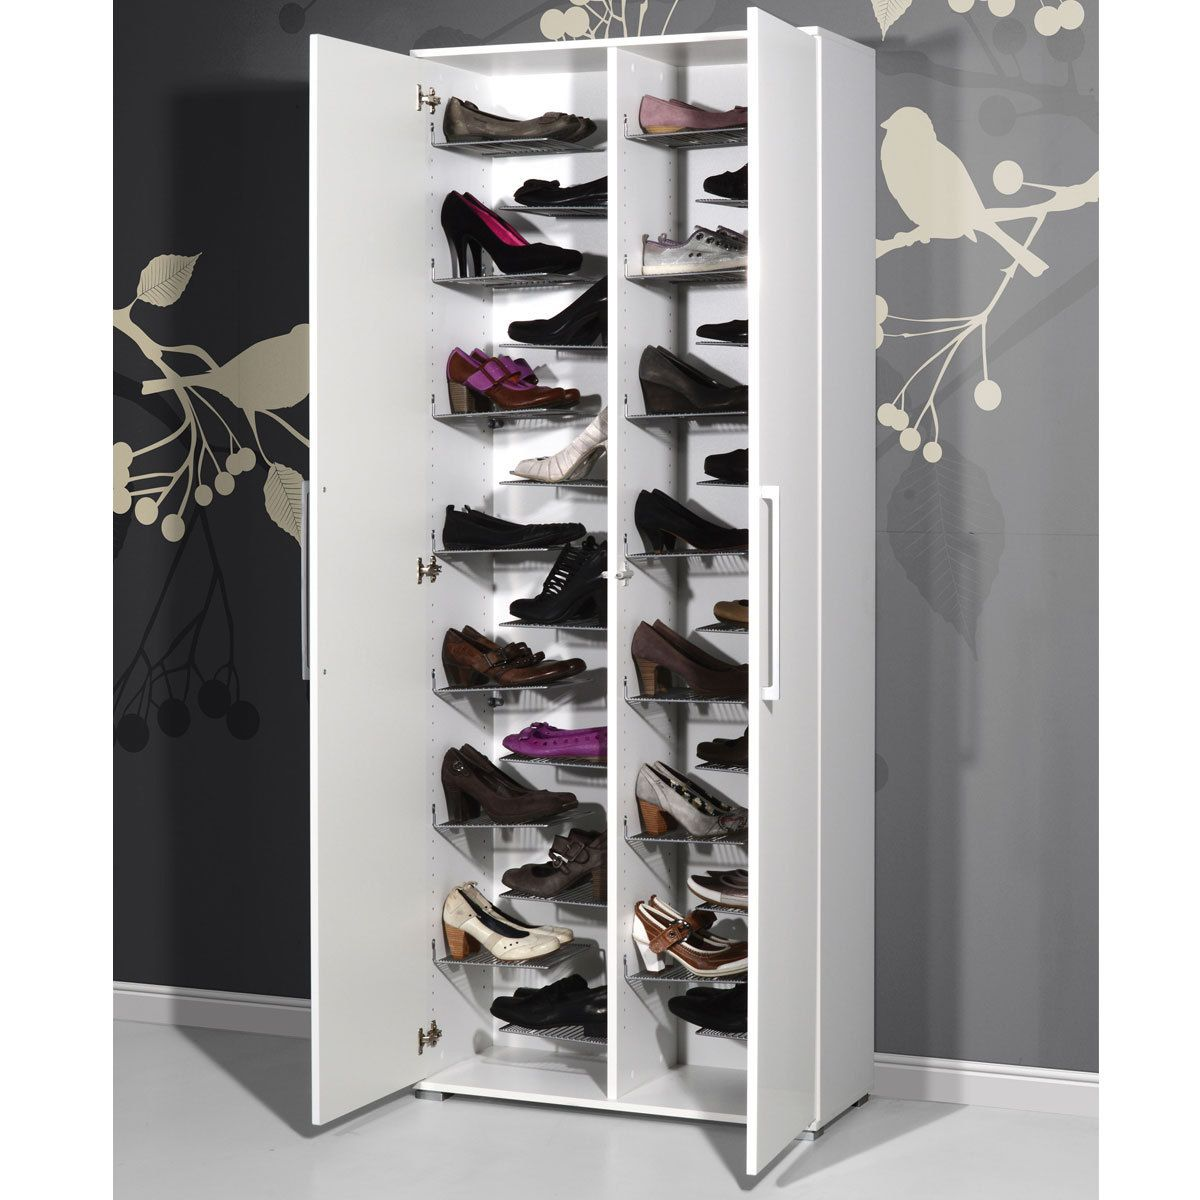 Meuble Chaussures Meuble A Chaussures Stiletto Blanc Meuble A Chaussures Stiletto Blanc Meuble Chaussure Meuble Chaussure Design Decoration Armoire